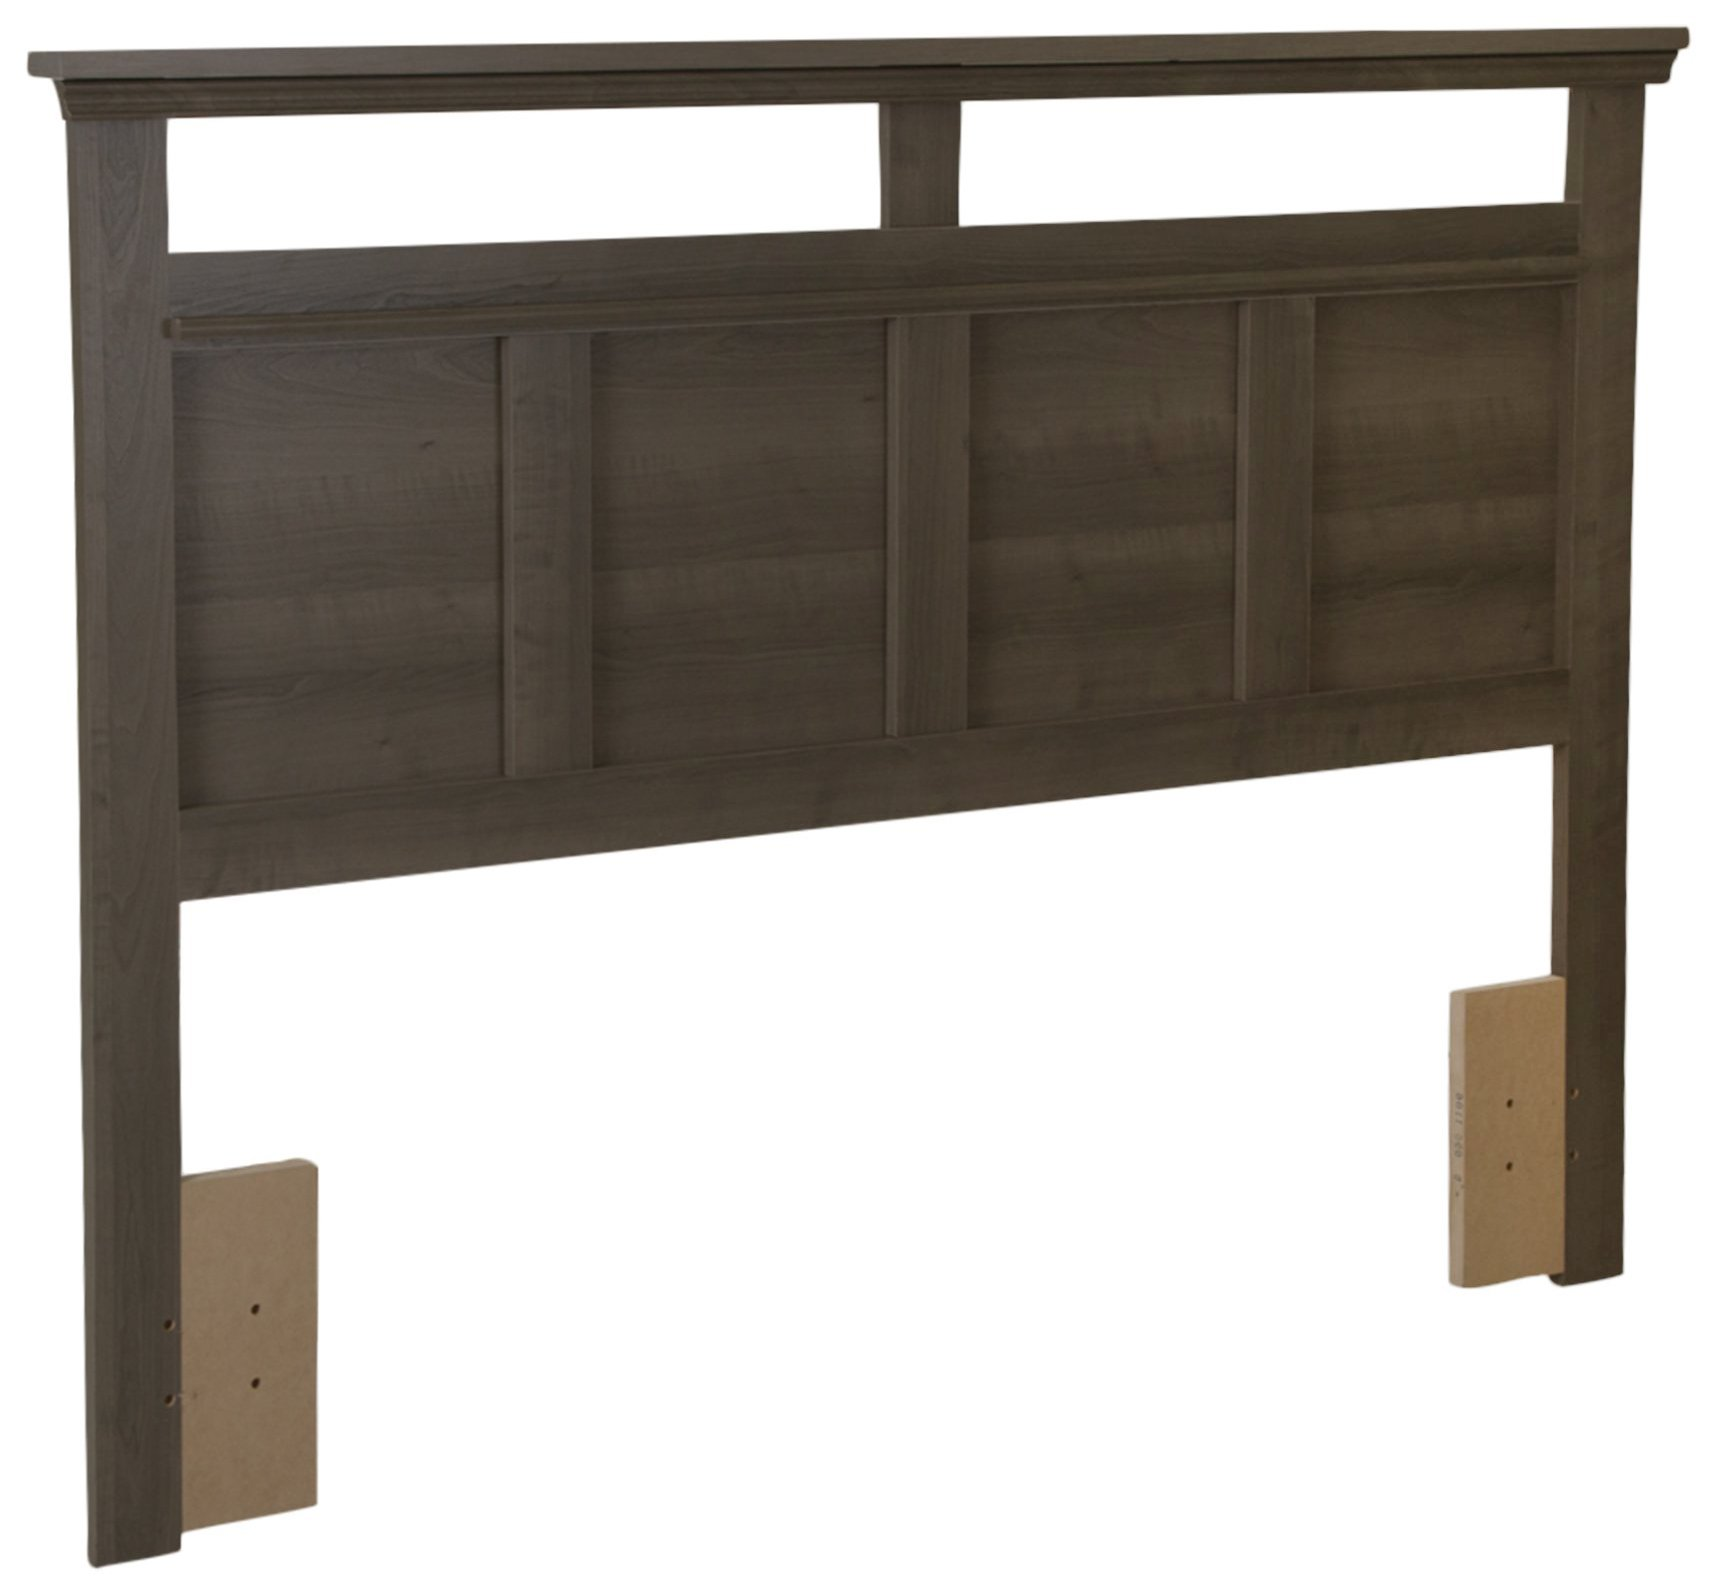 South Shore Versa Headboard, Full/Queen 54/60-Inch, Gray Maple